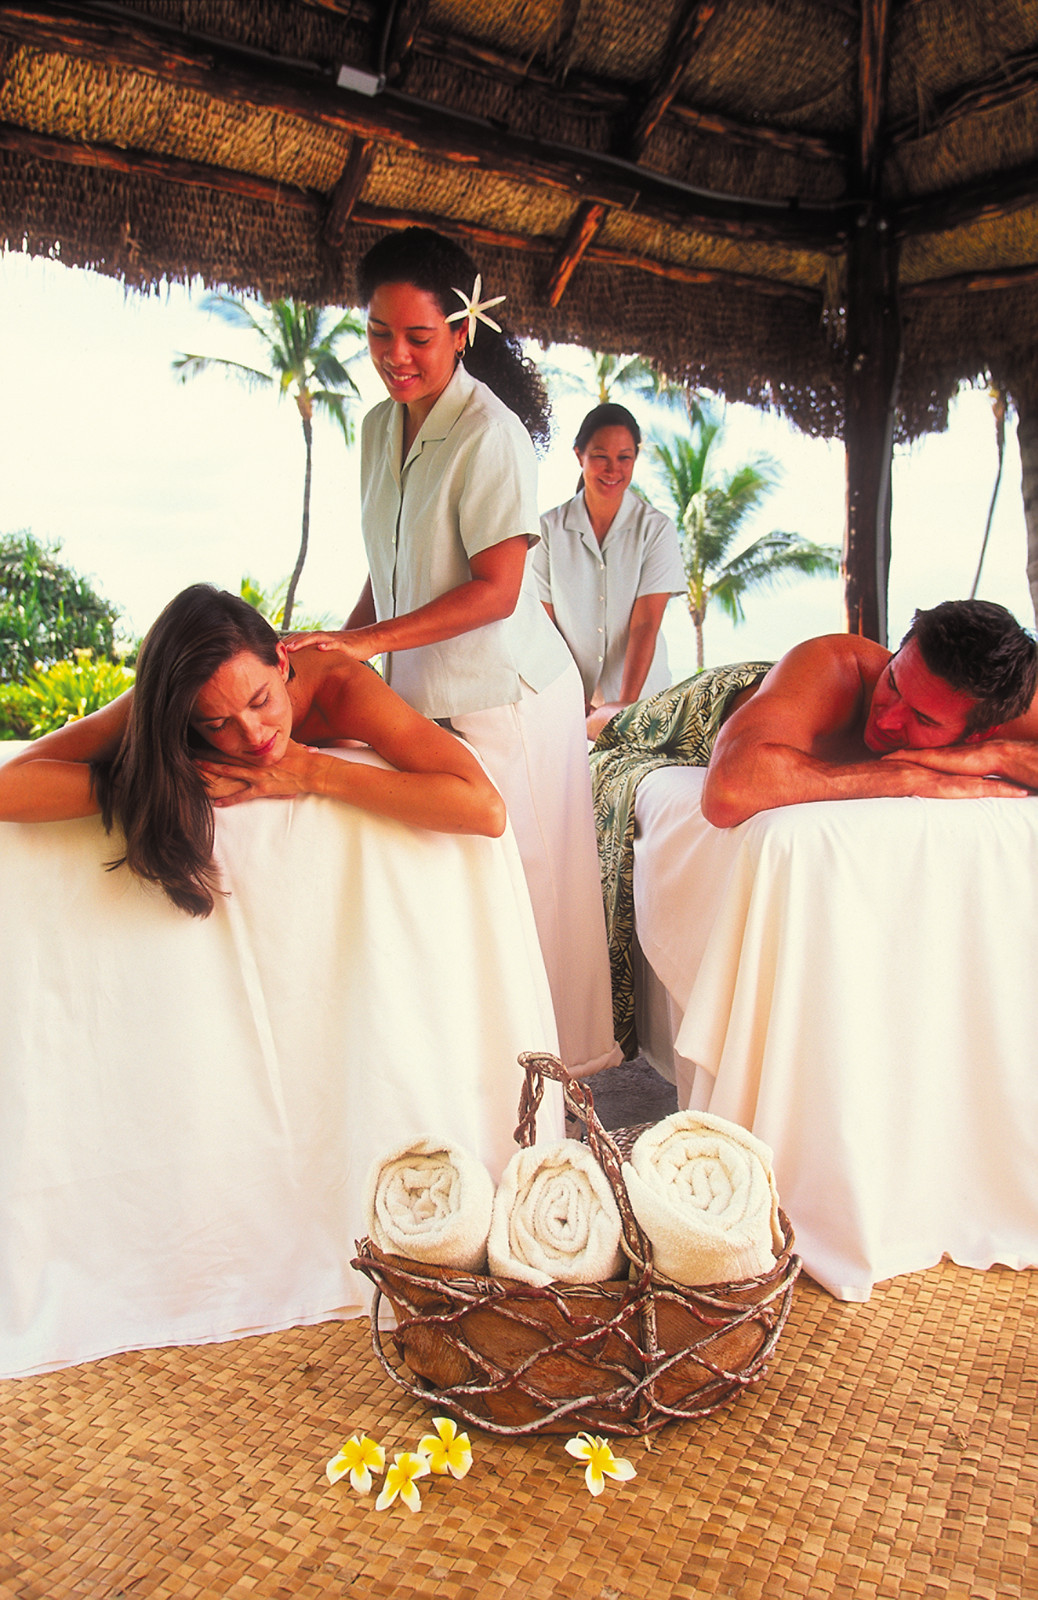 blue, And, Spa, Romance, Packages, Travel to maui